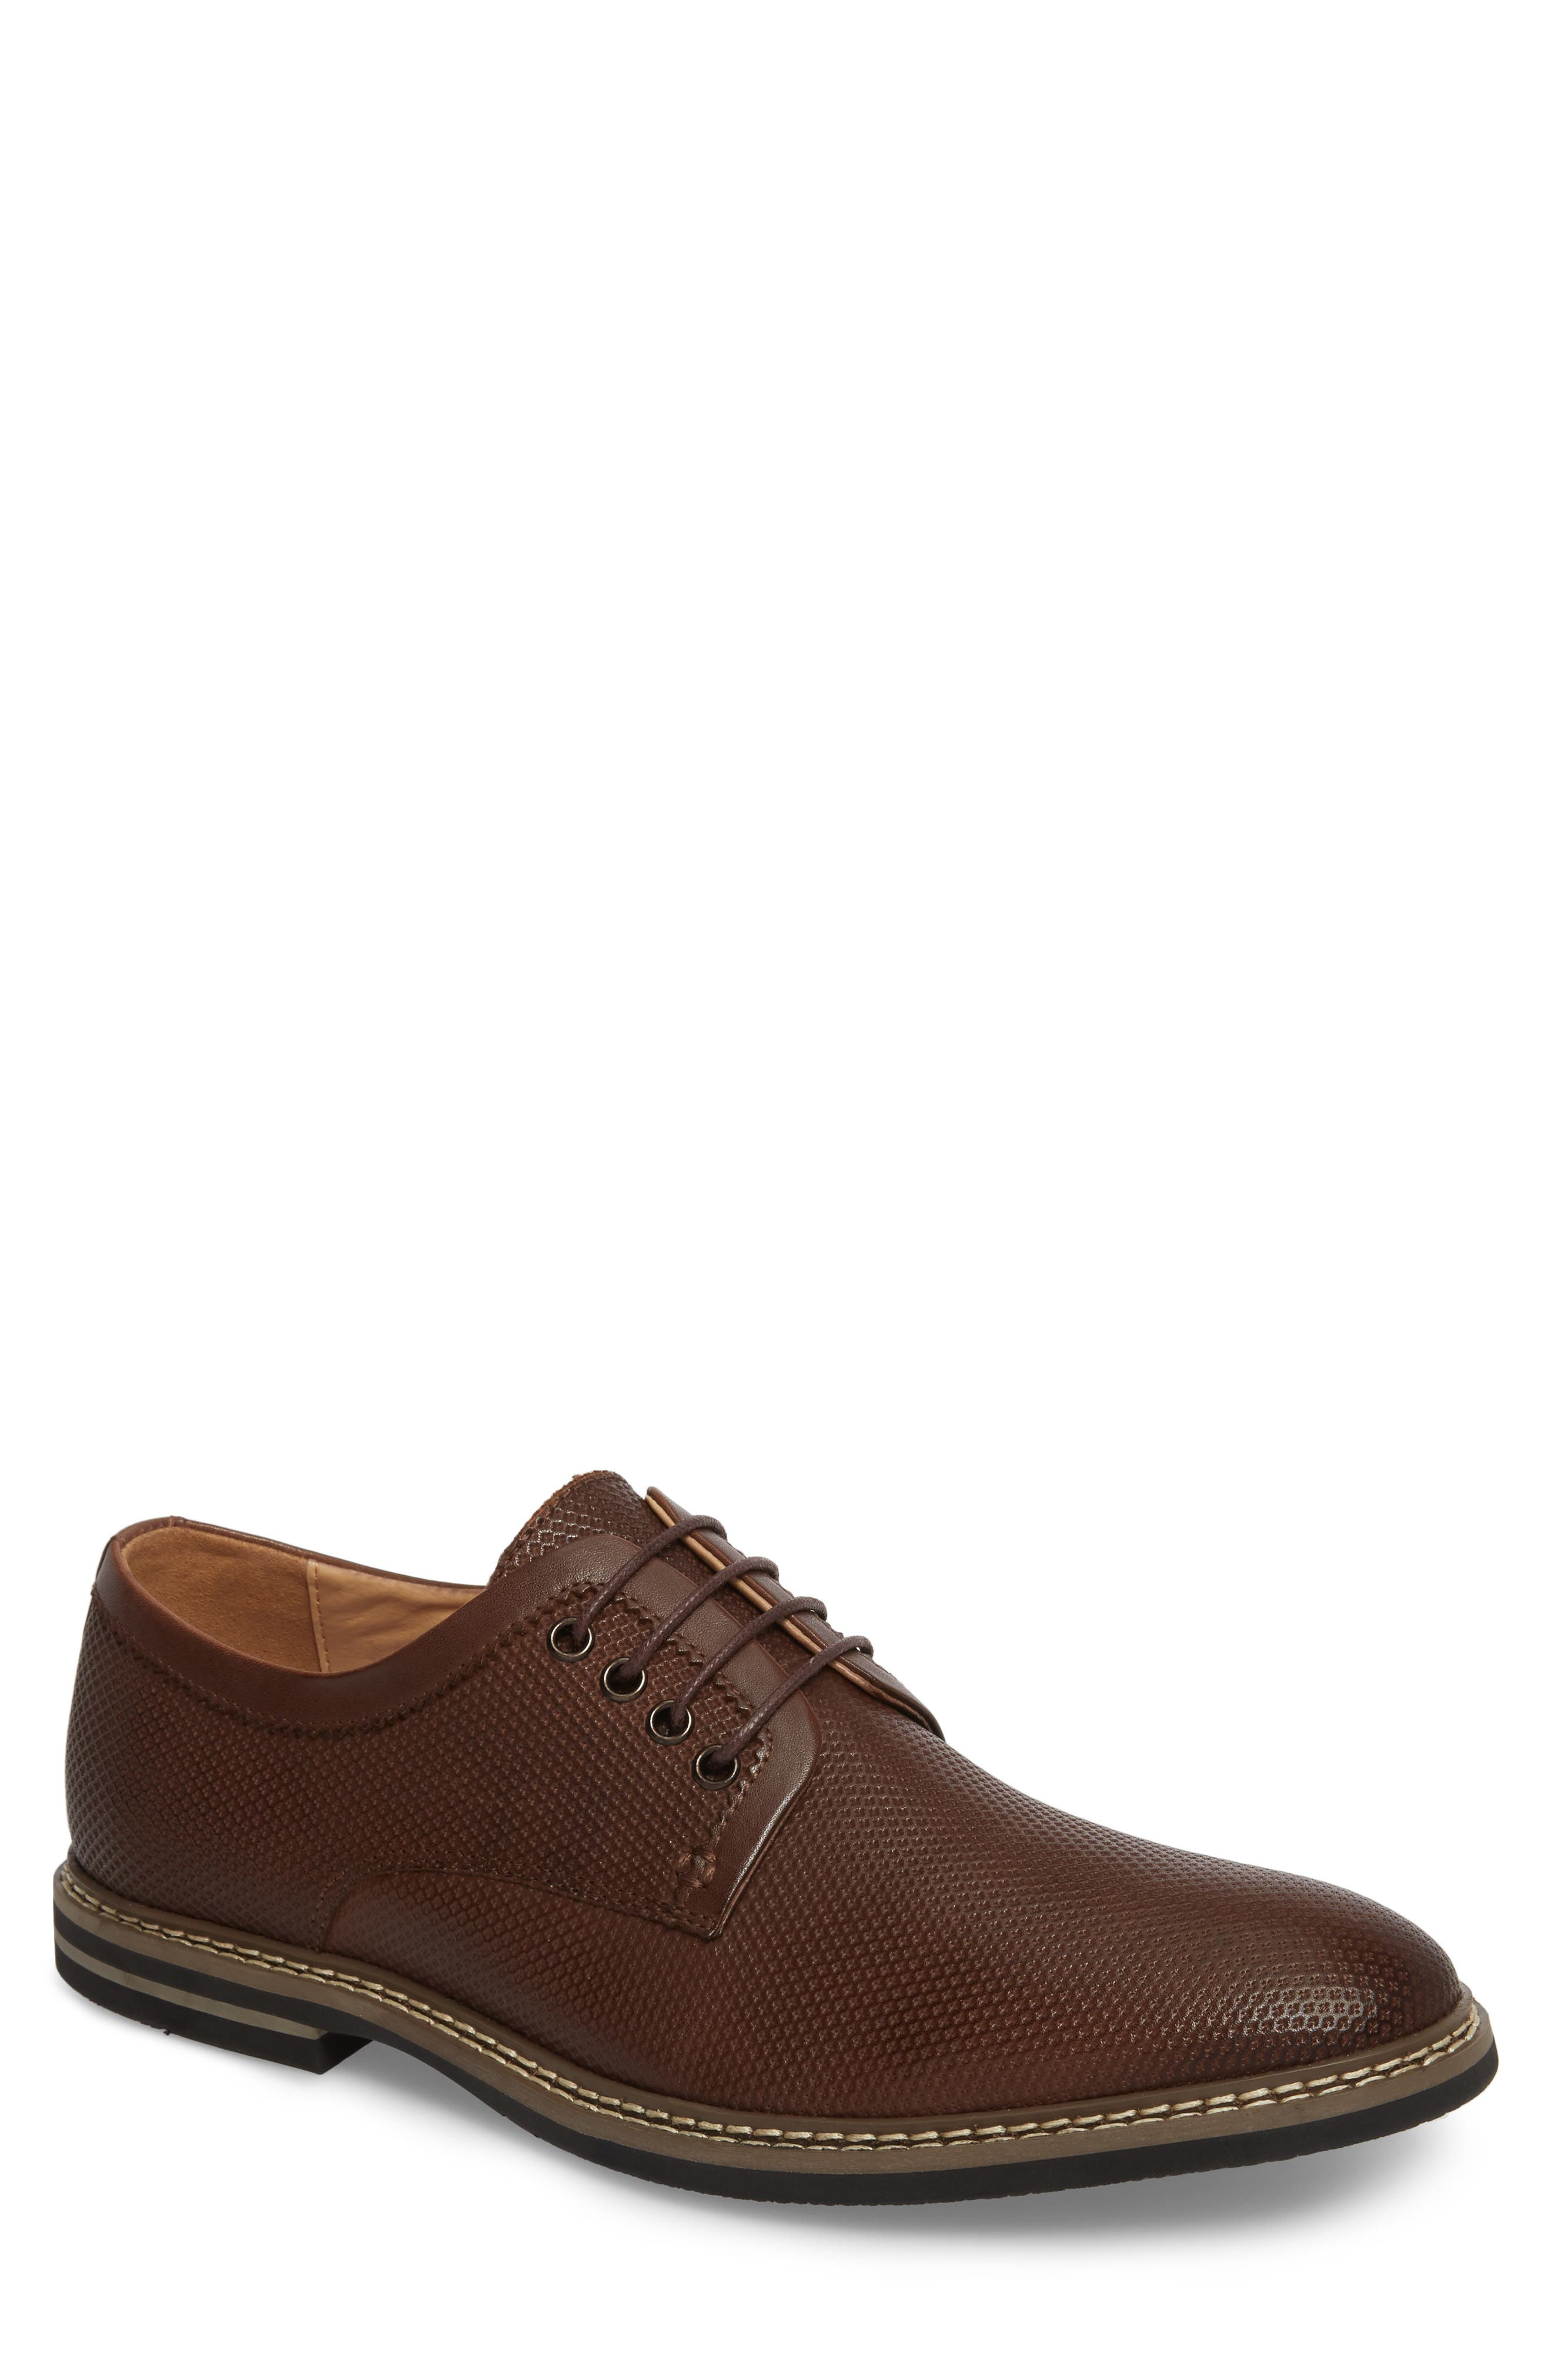 Canning Plain Toe Derby,                             Main thumbnail 1, color,                             Brown Leather